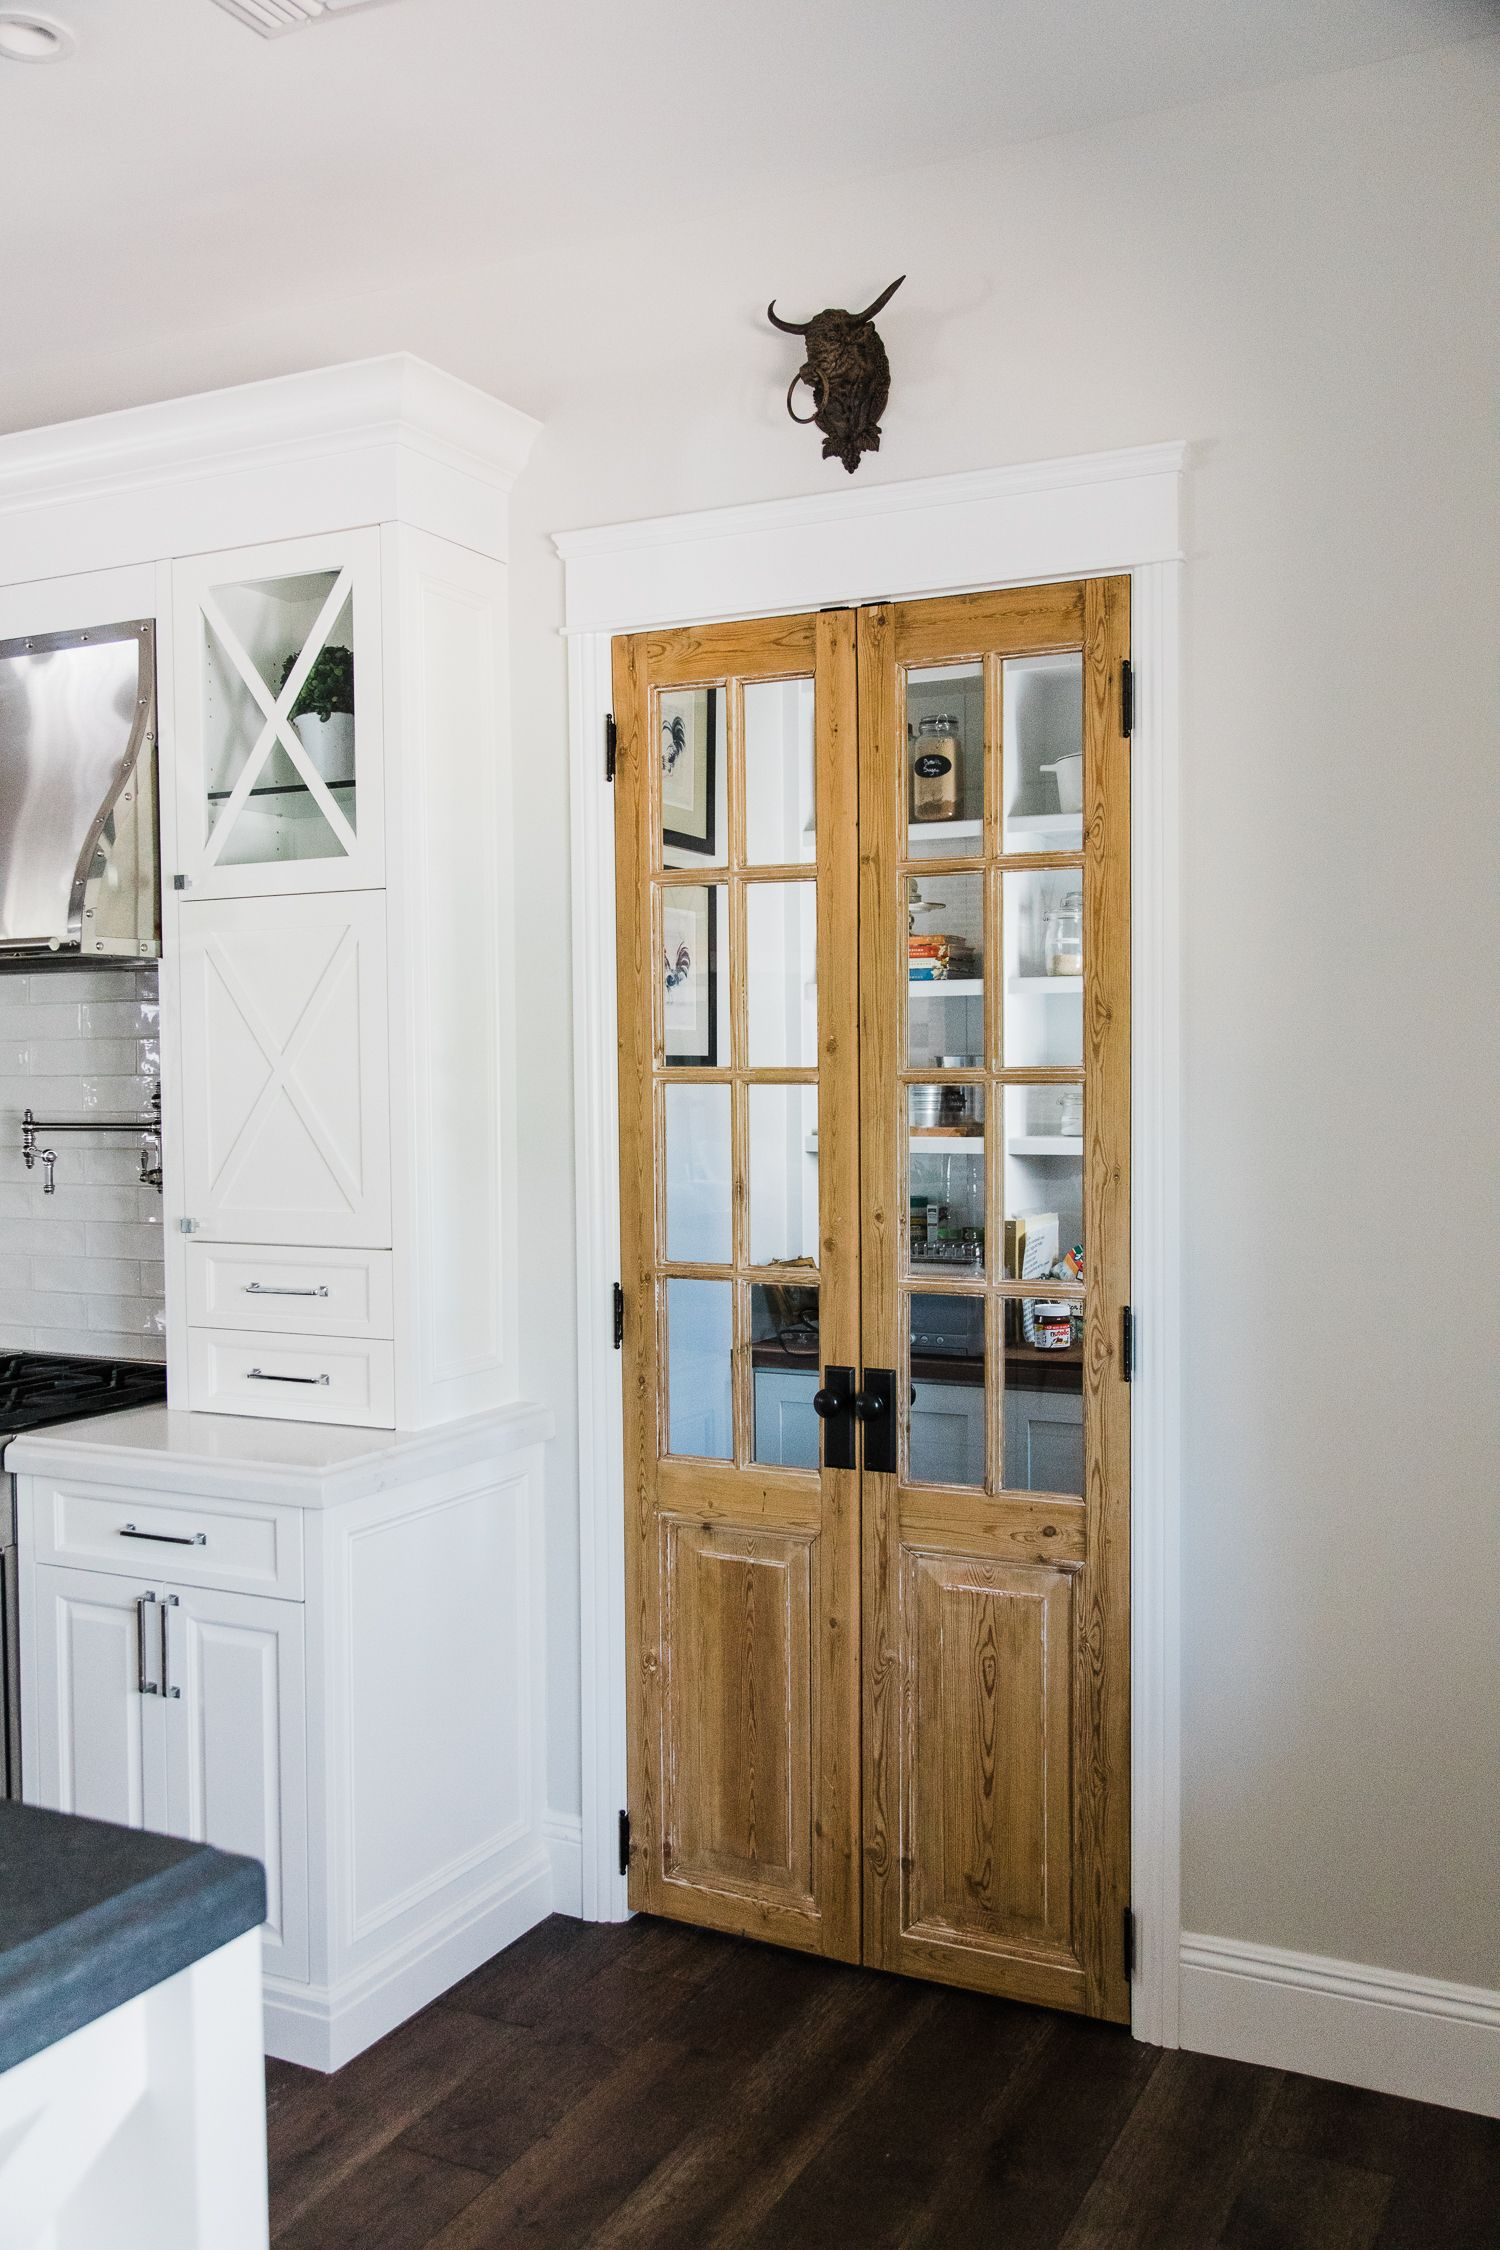 Custom Antique Pantry Doors By Rafterhouse French Doors Interior Pantry Design Home